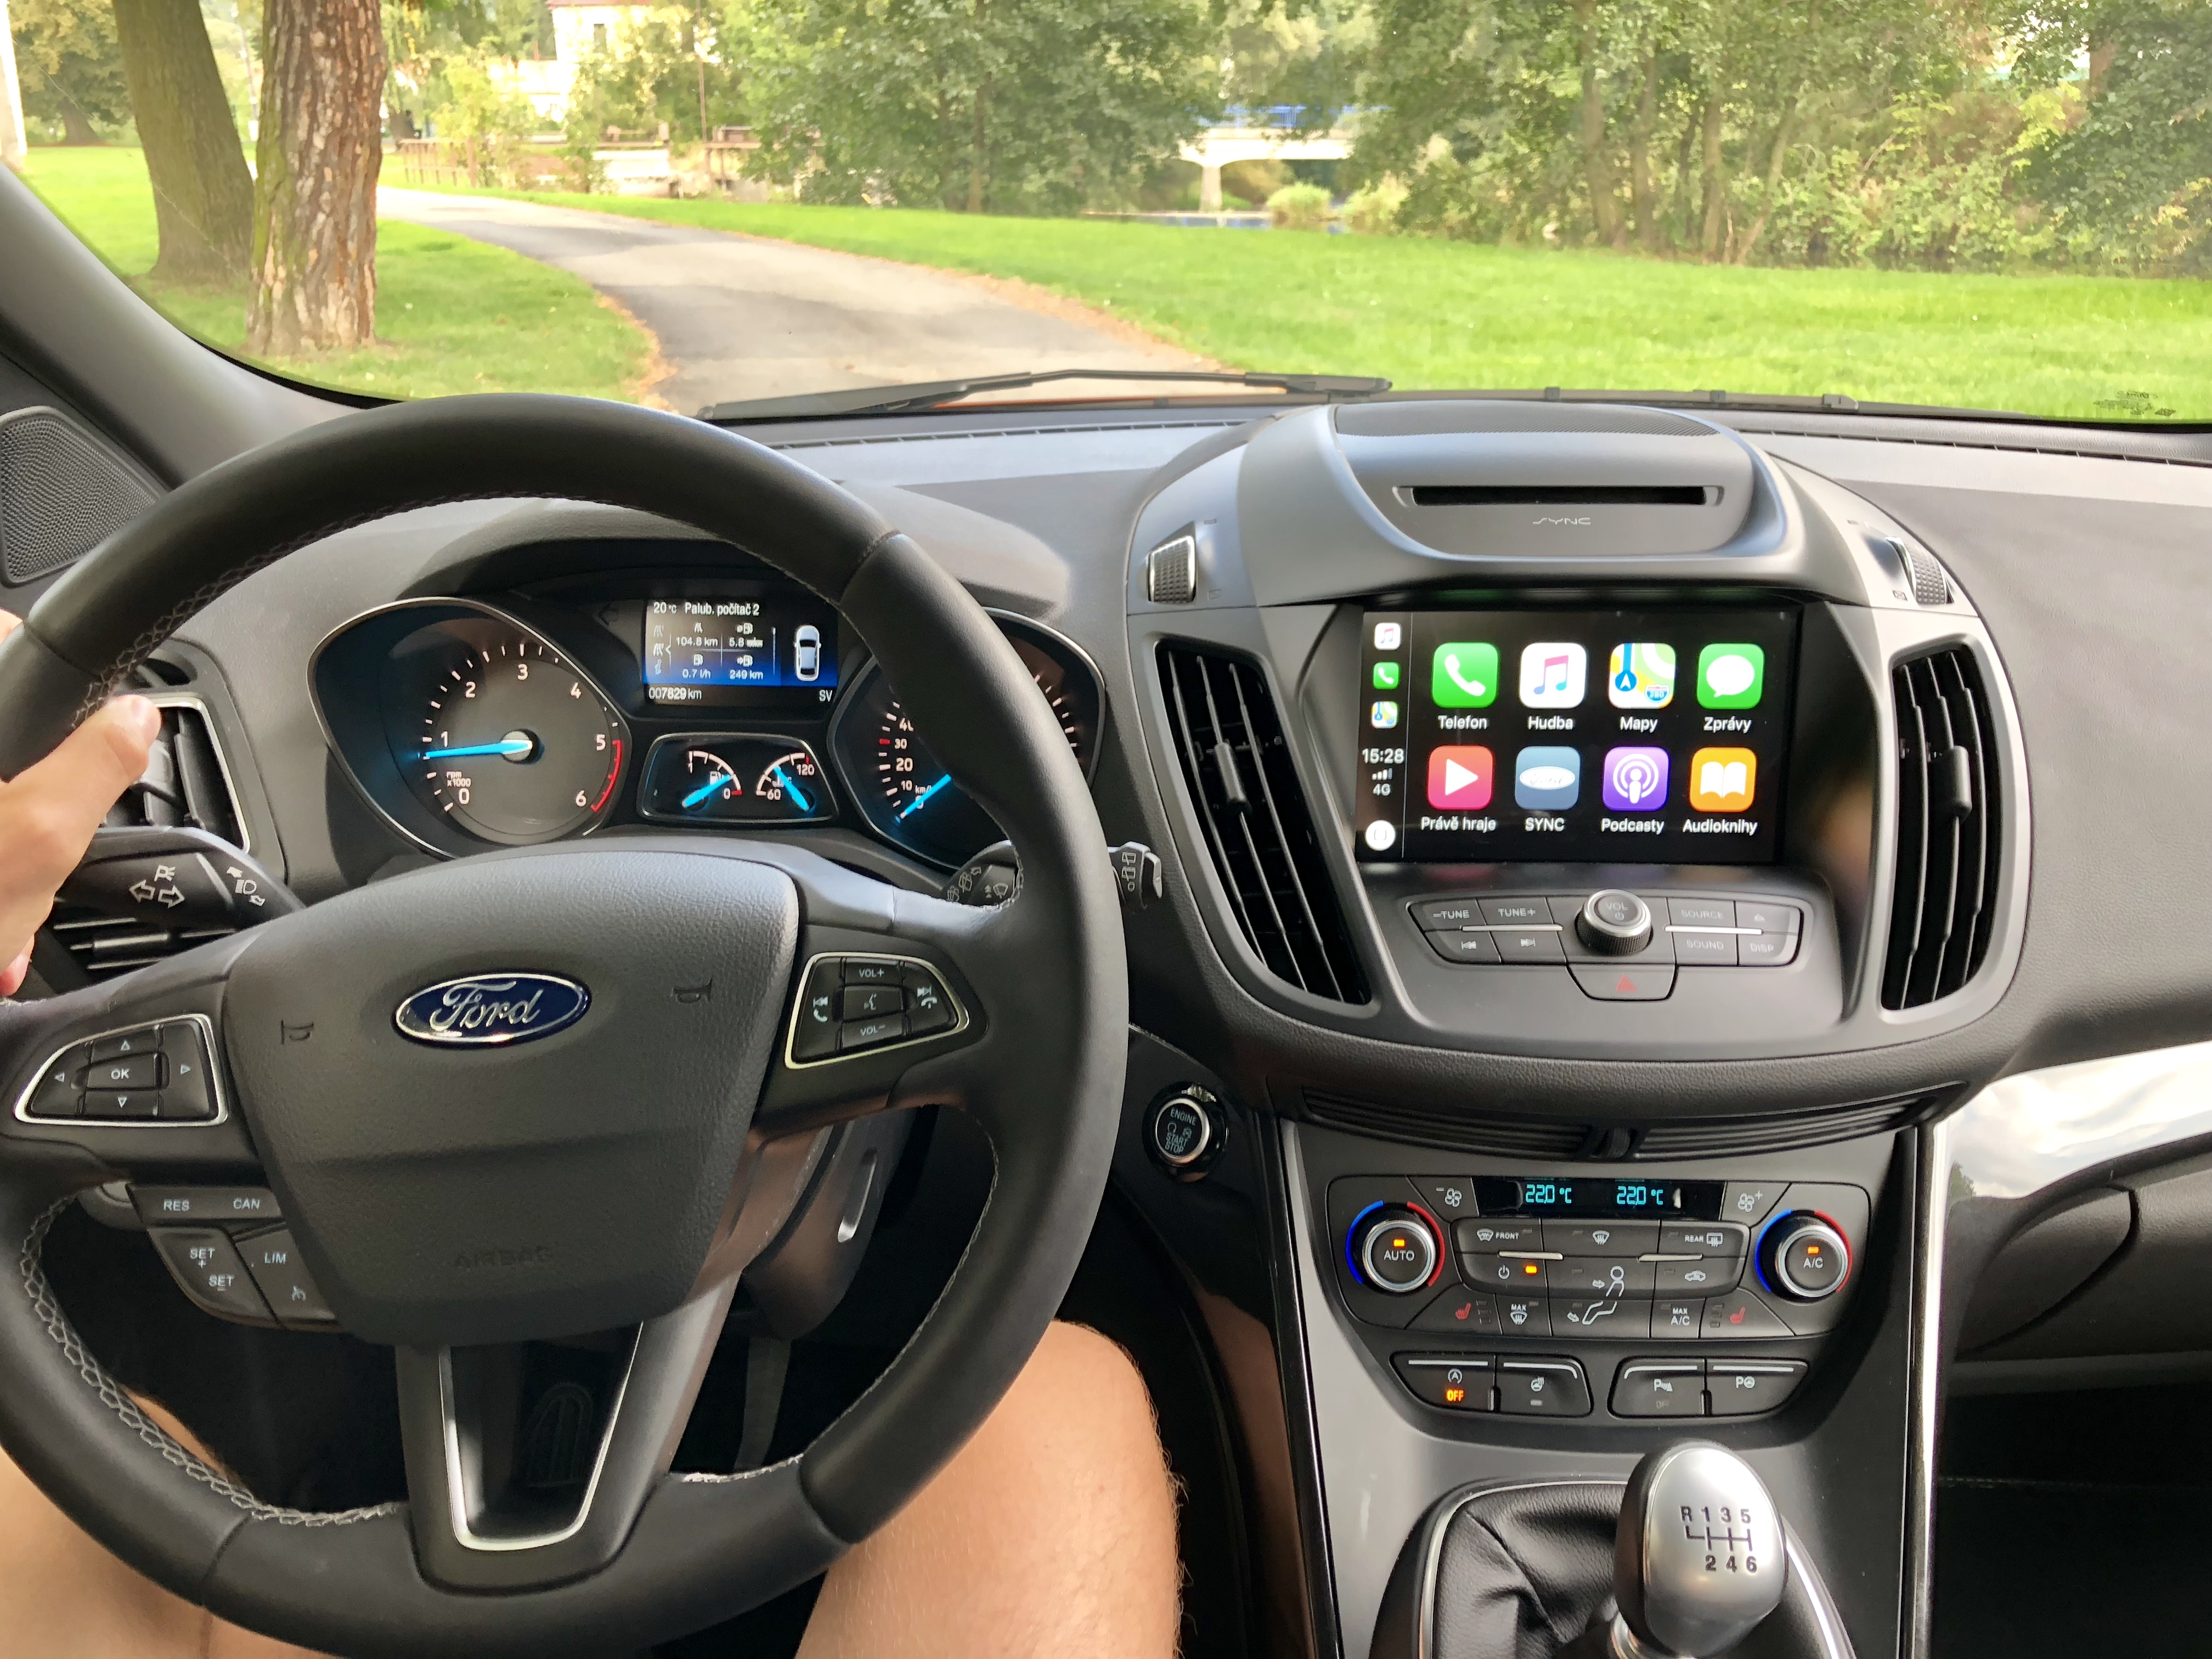 Ford Kuga s infotainmentem SYNC 3